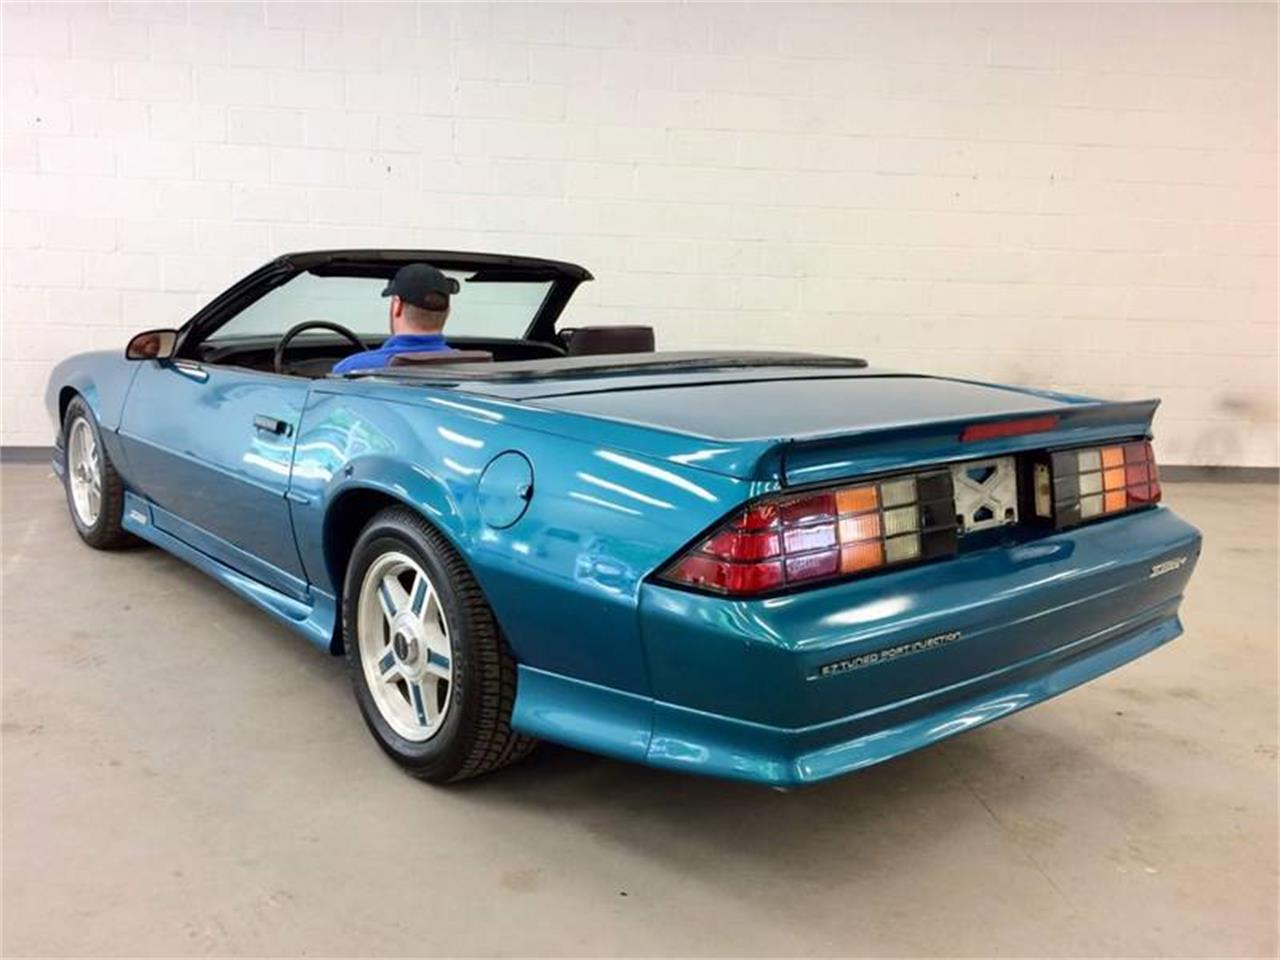 Large Picture of '92 Chevrolet Camaro located in Vestal New York - $12,995.00 - Q4F9